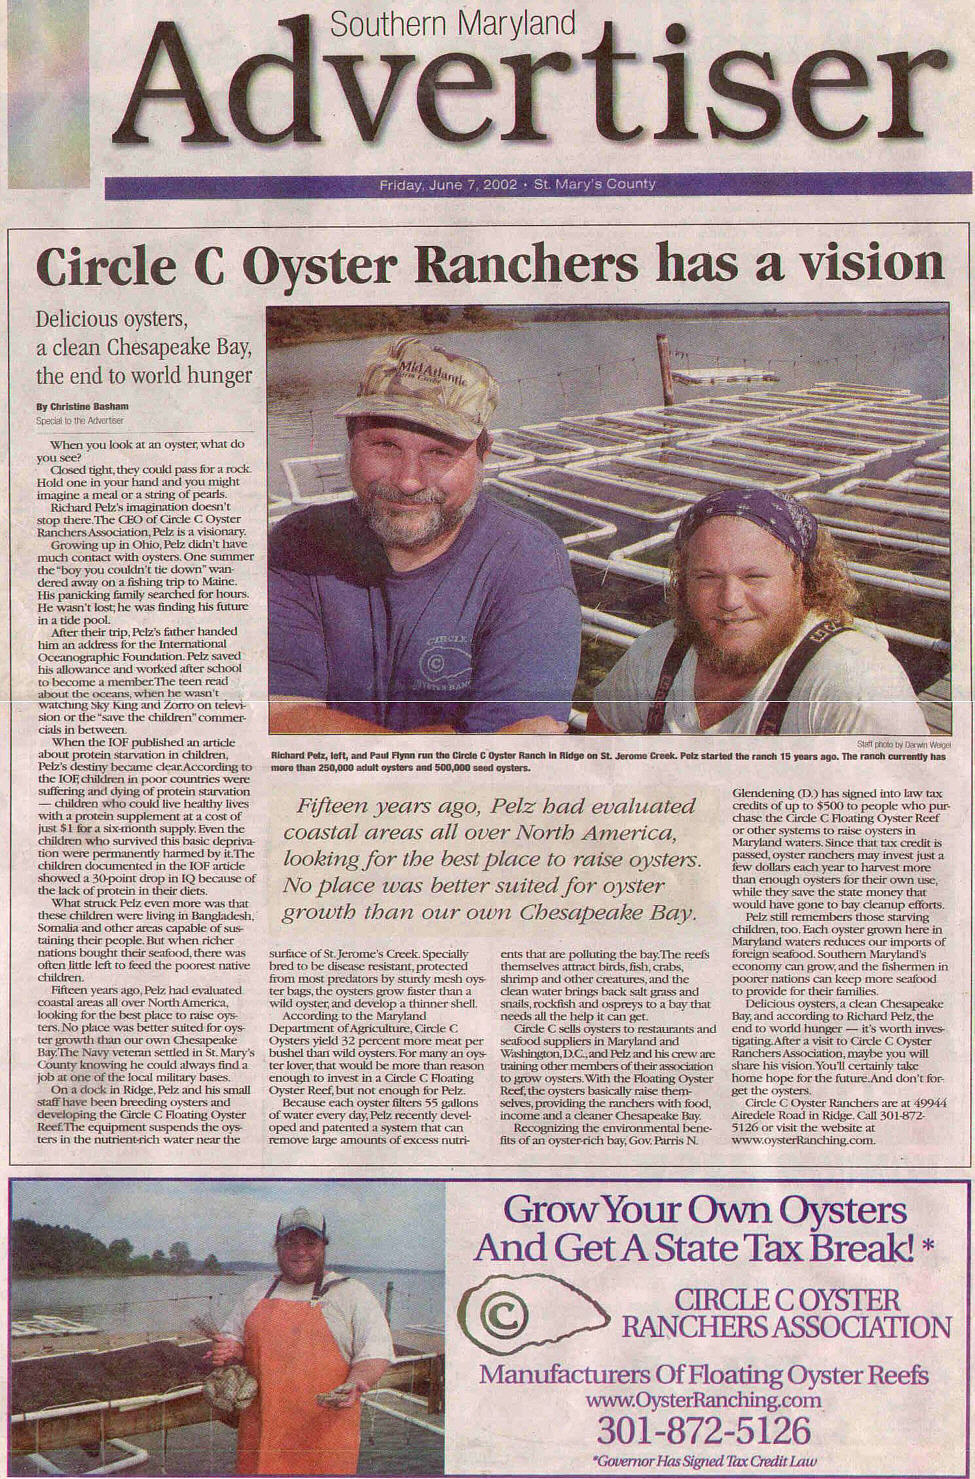 Southern Maryland Advertiser article.